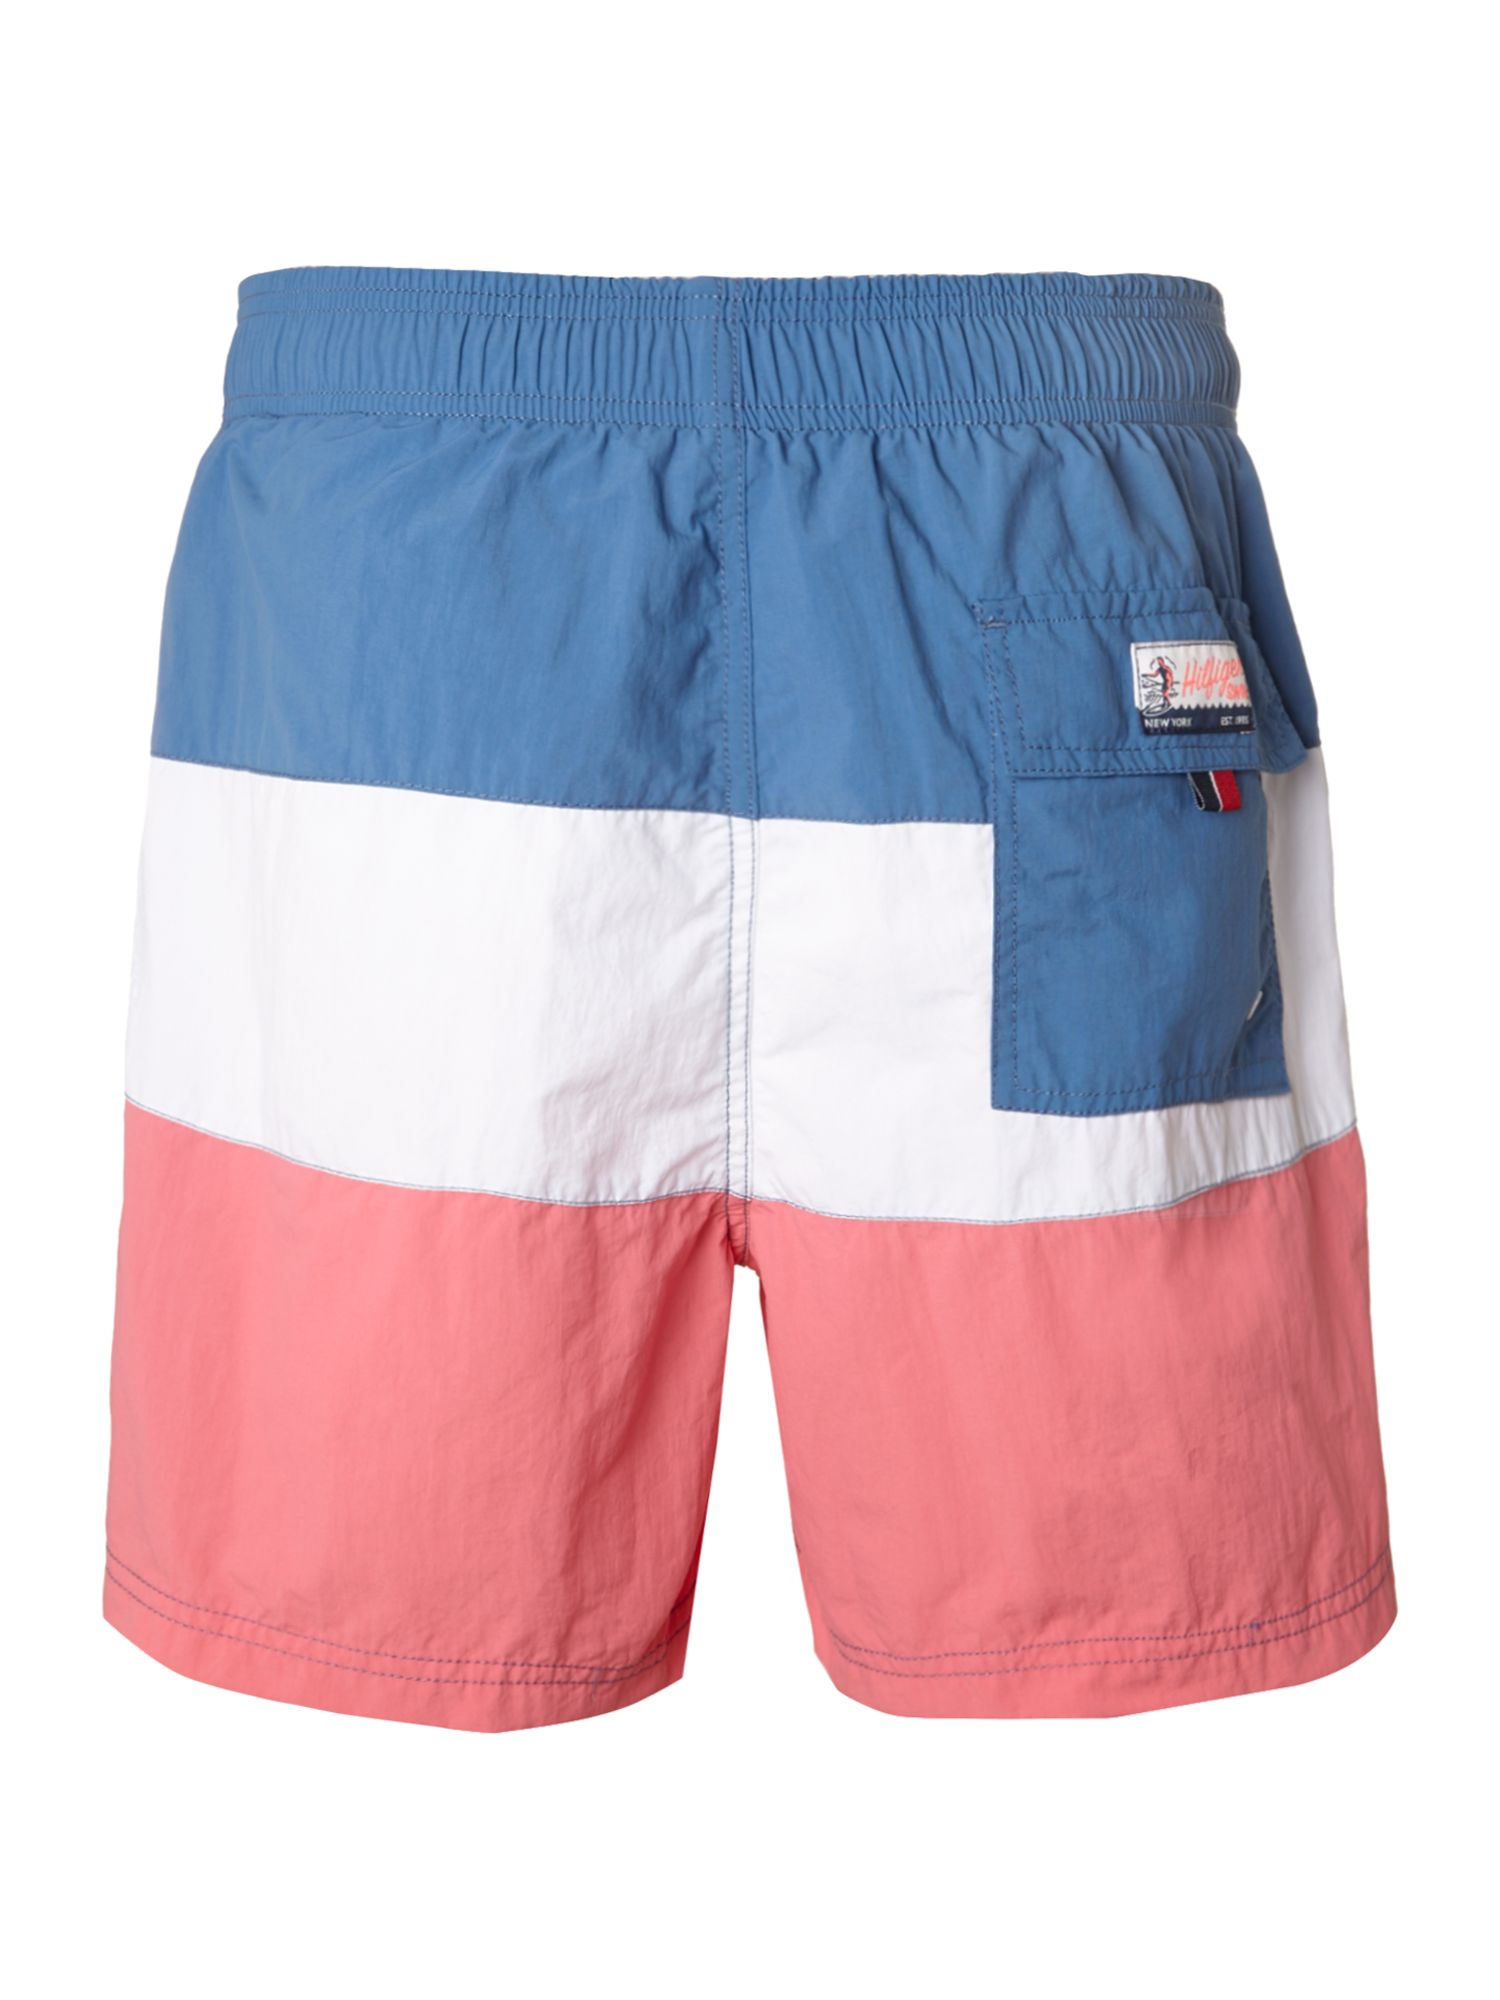 Banjer swim trunk